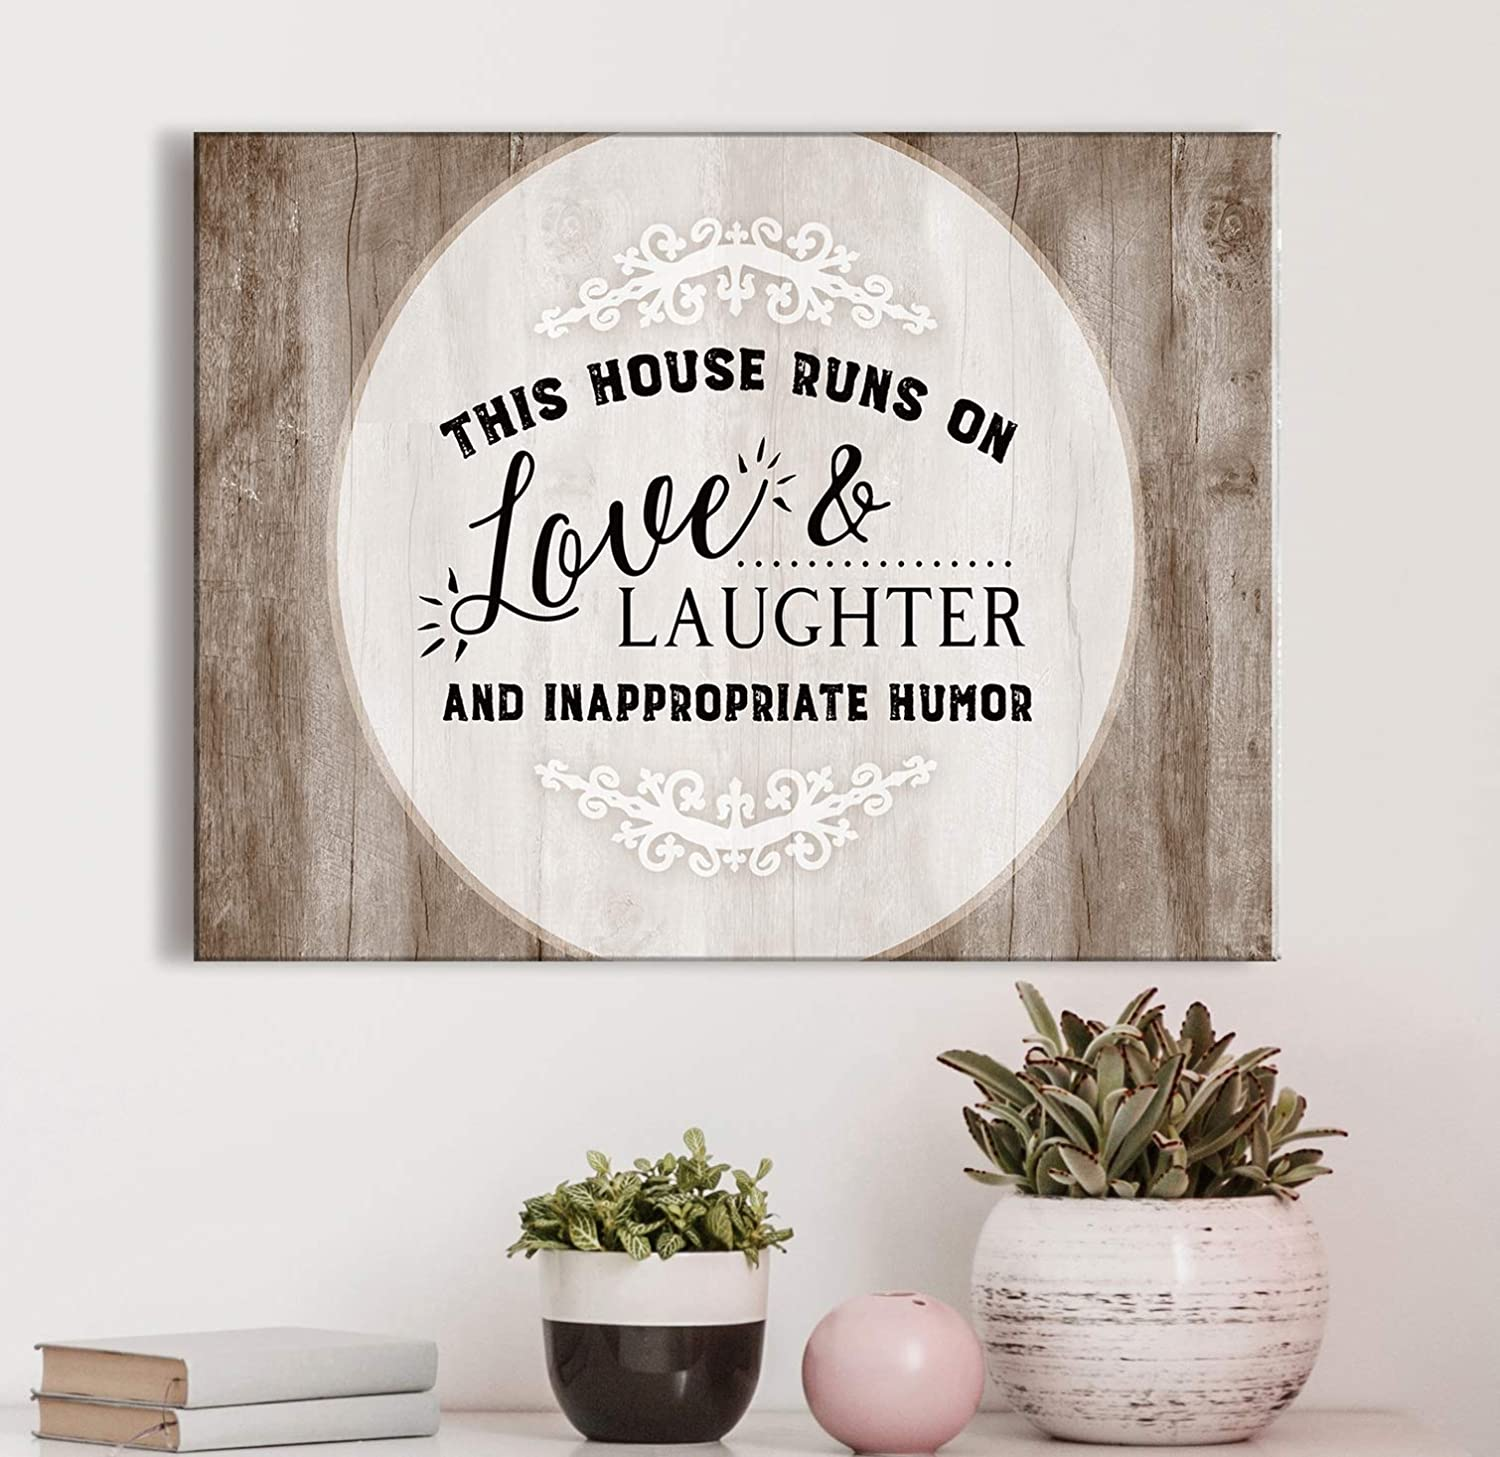 Sense of Art   This House Runs On Love And Laughter   Home Sign   Wall Signs With Quotes   Home Sign Decor  Wall Decor For Living Room   Home Wall Decals   Rustic Art (Brown, 30x40)